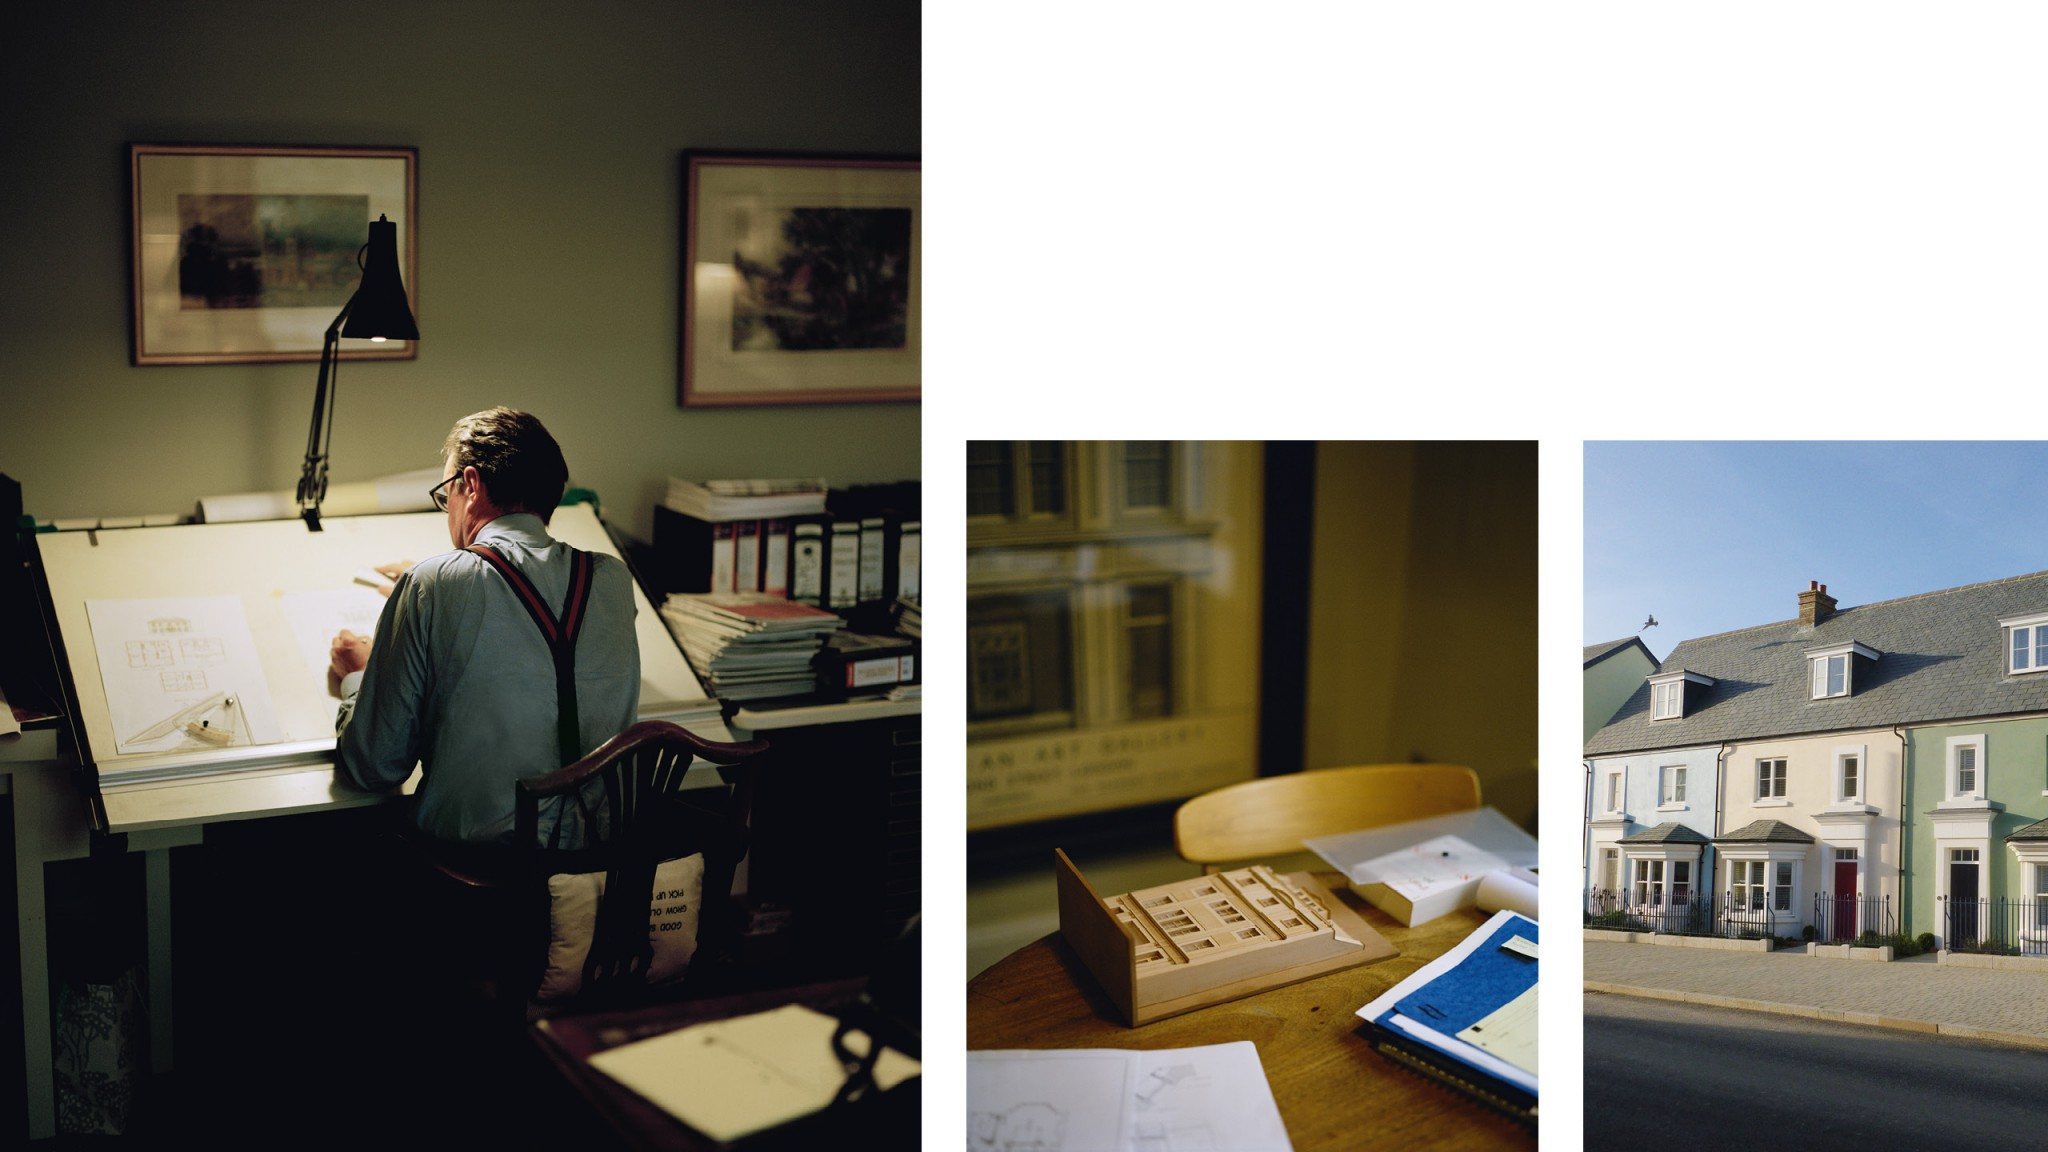 Three images: One of the architect, close up in his home and exterior of houses